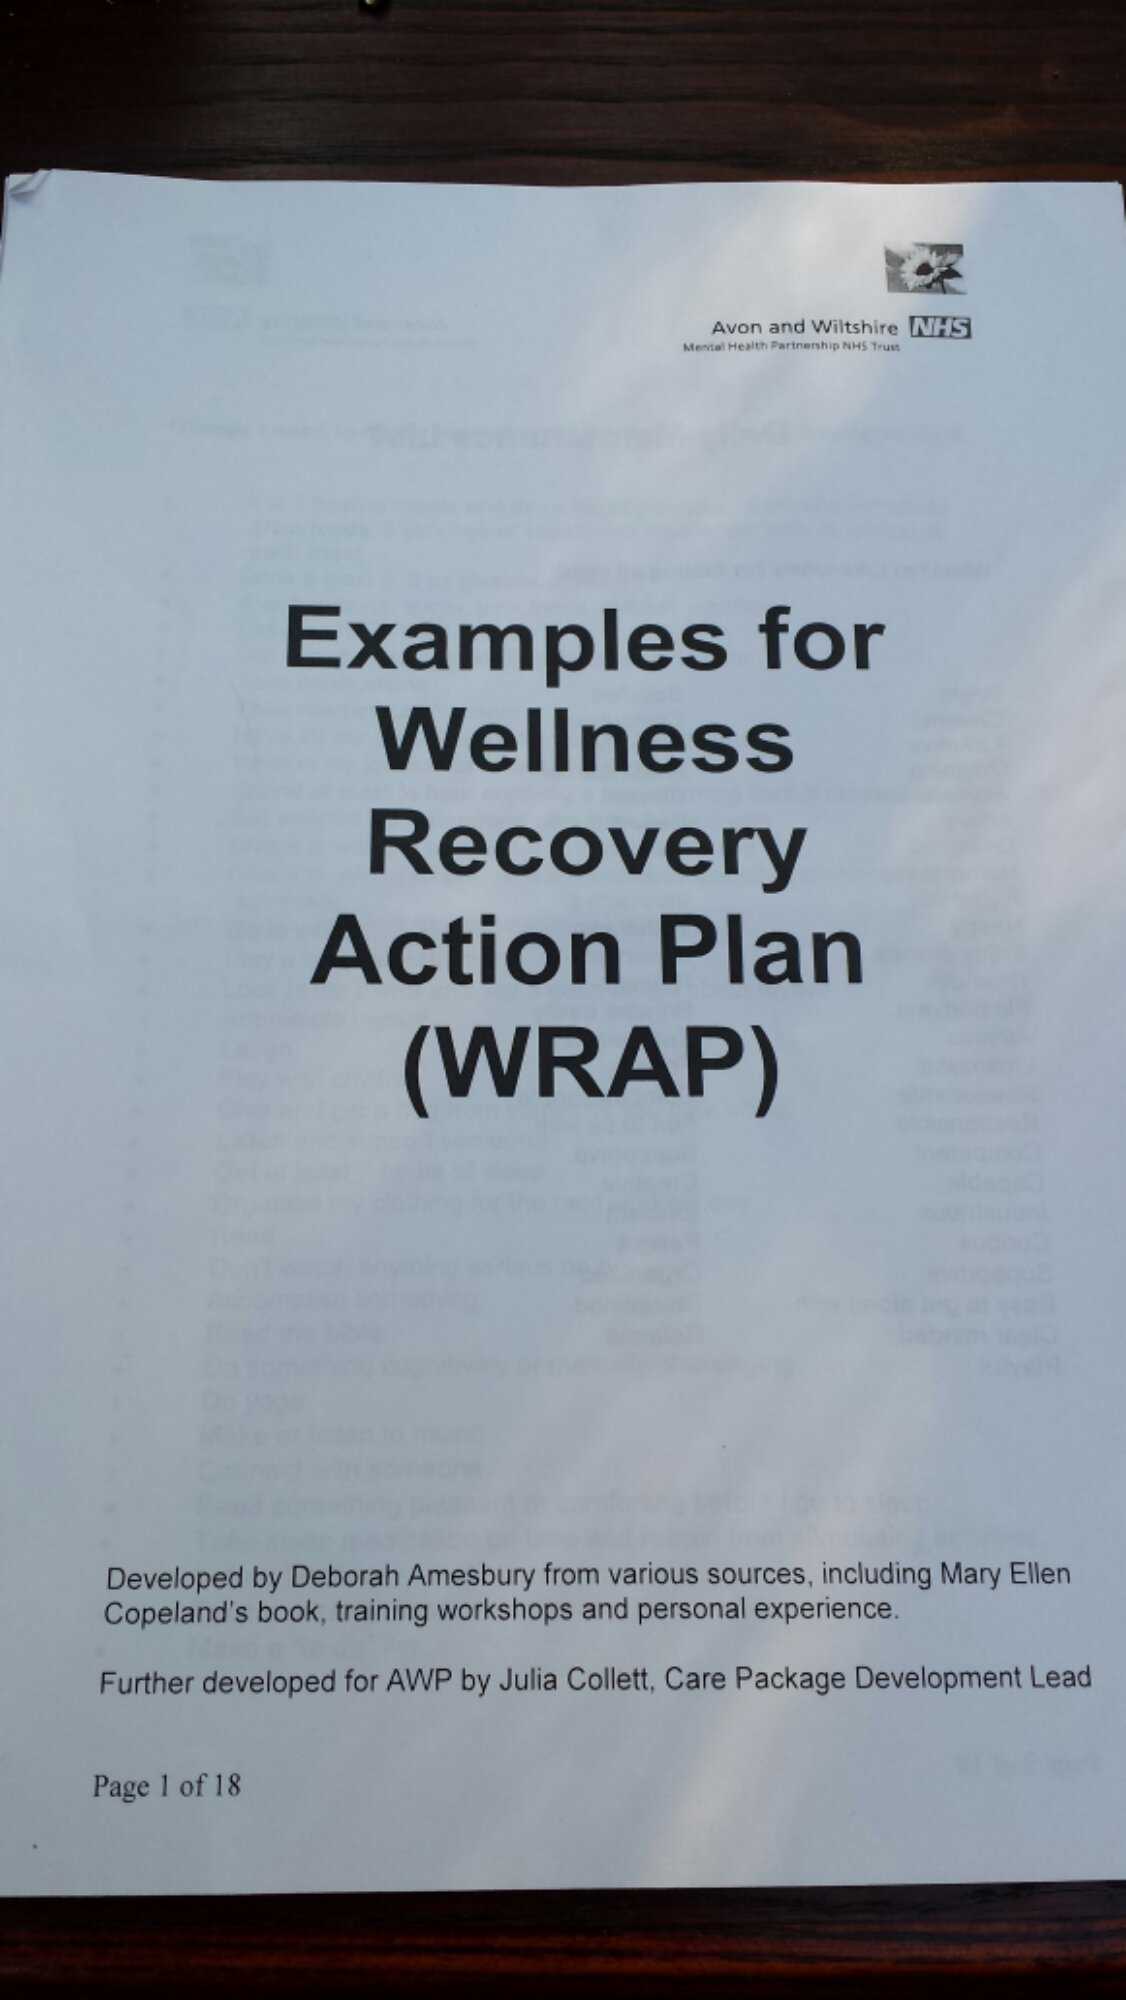 Sample WRAP (Wellness Recovery Action Plan) : Life after BPD